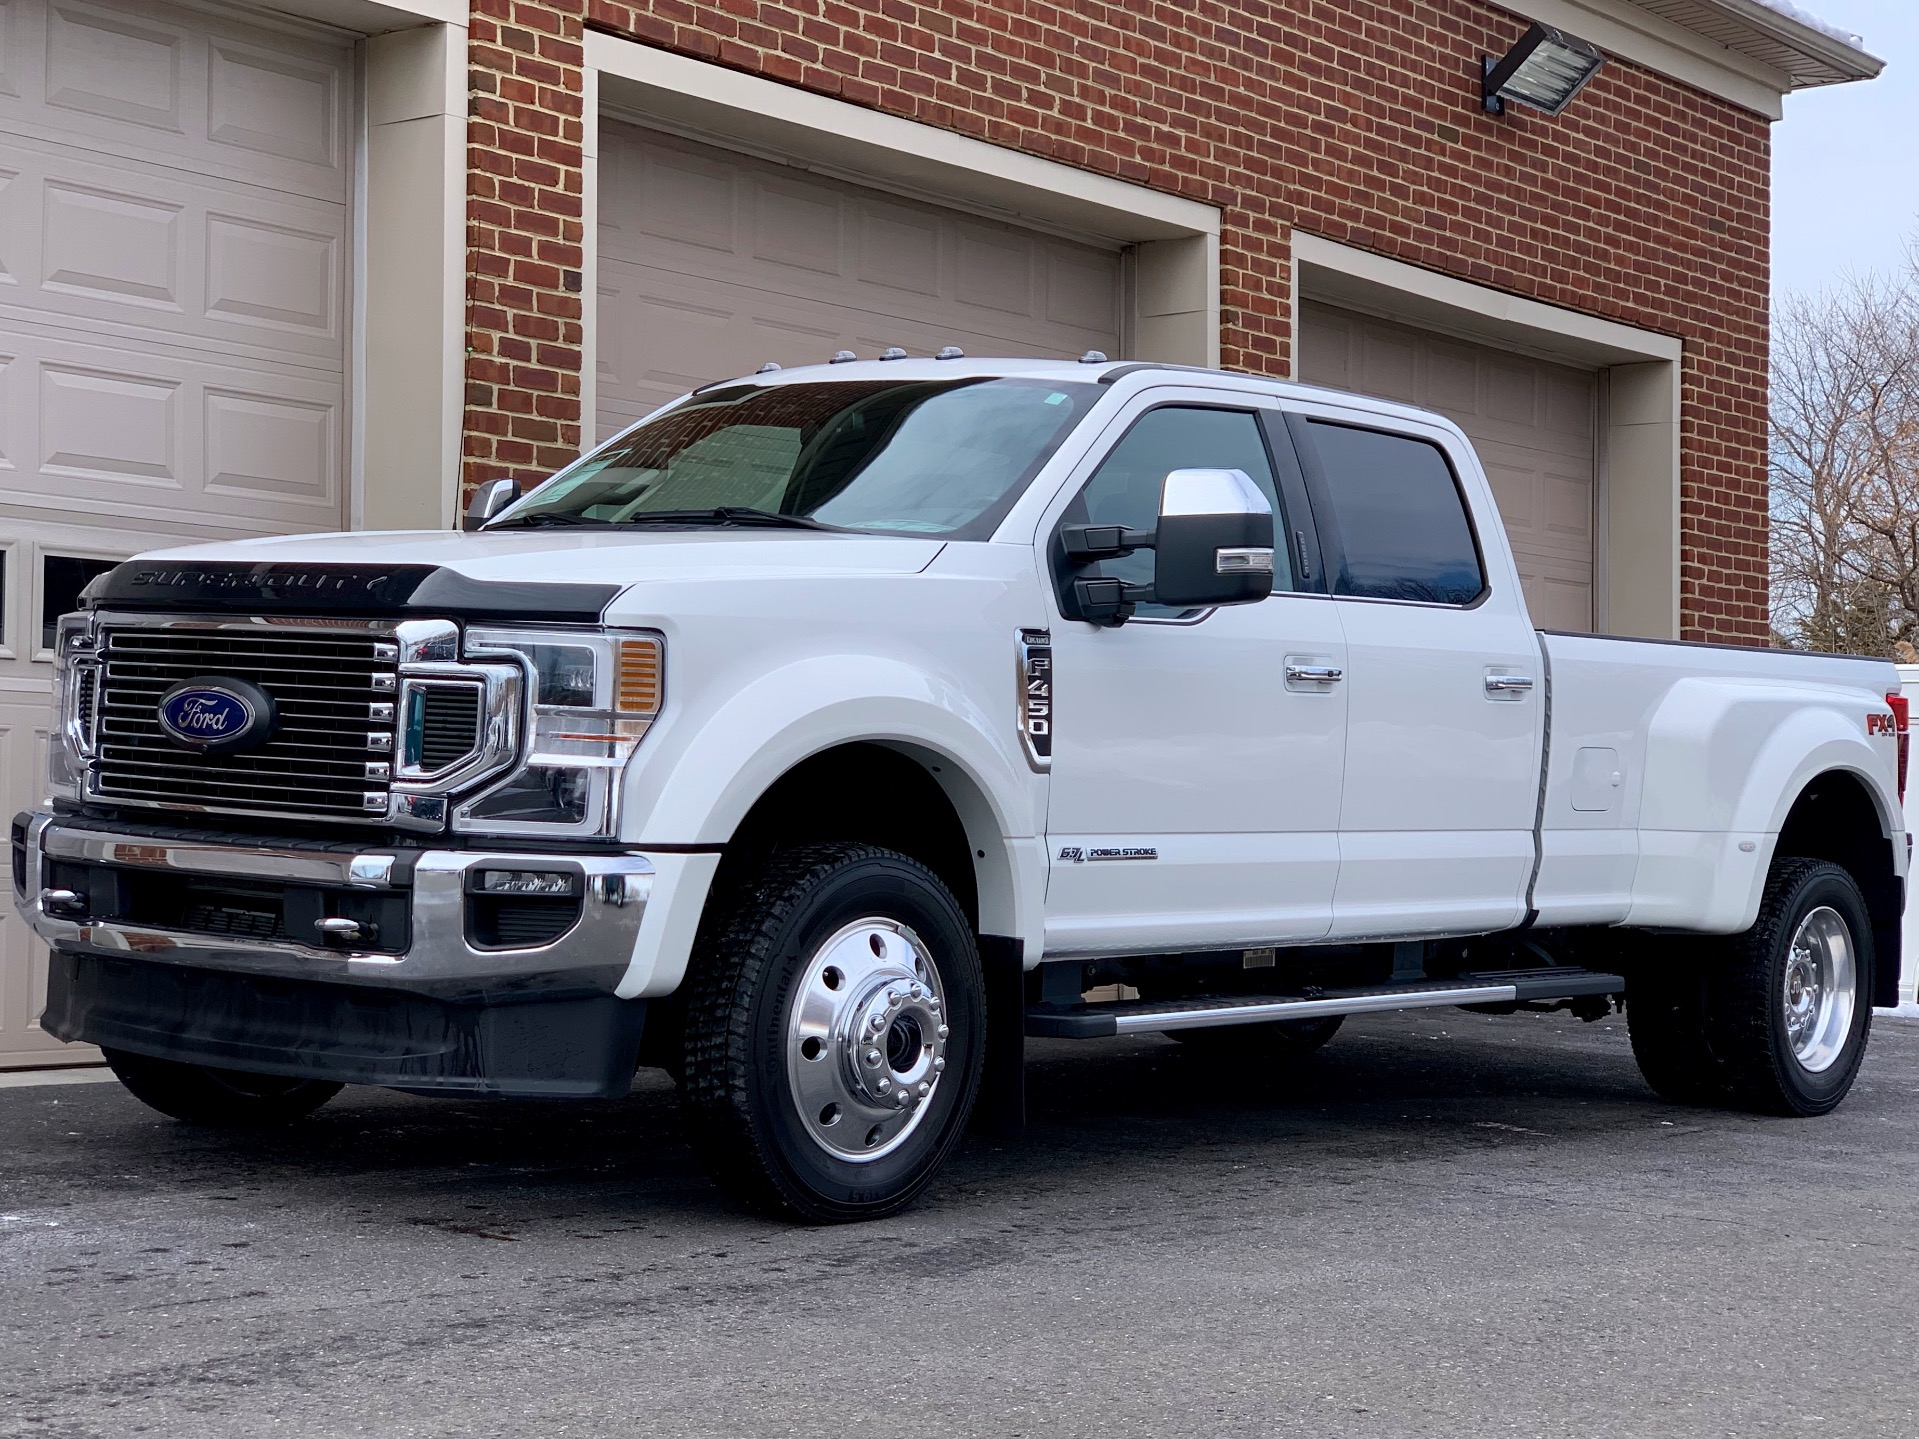 Used-2020-Ford-F-450-Super-Duty-King-Ranch-DRW